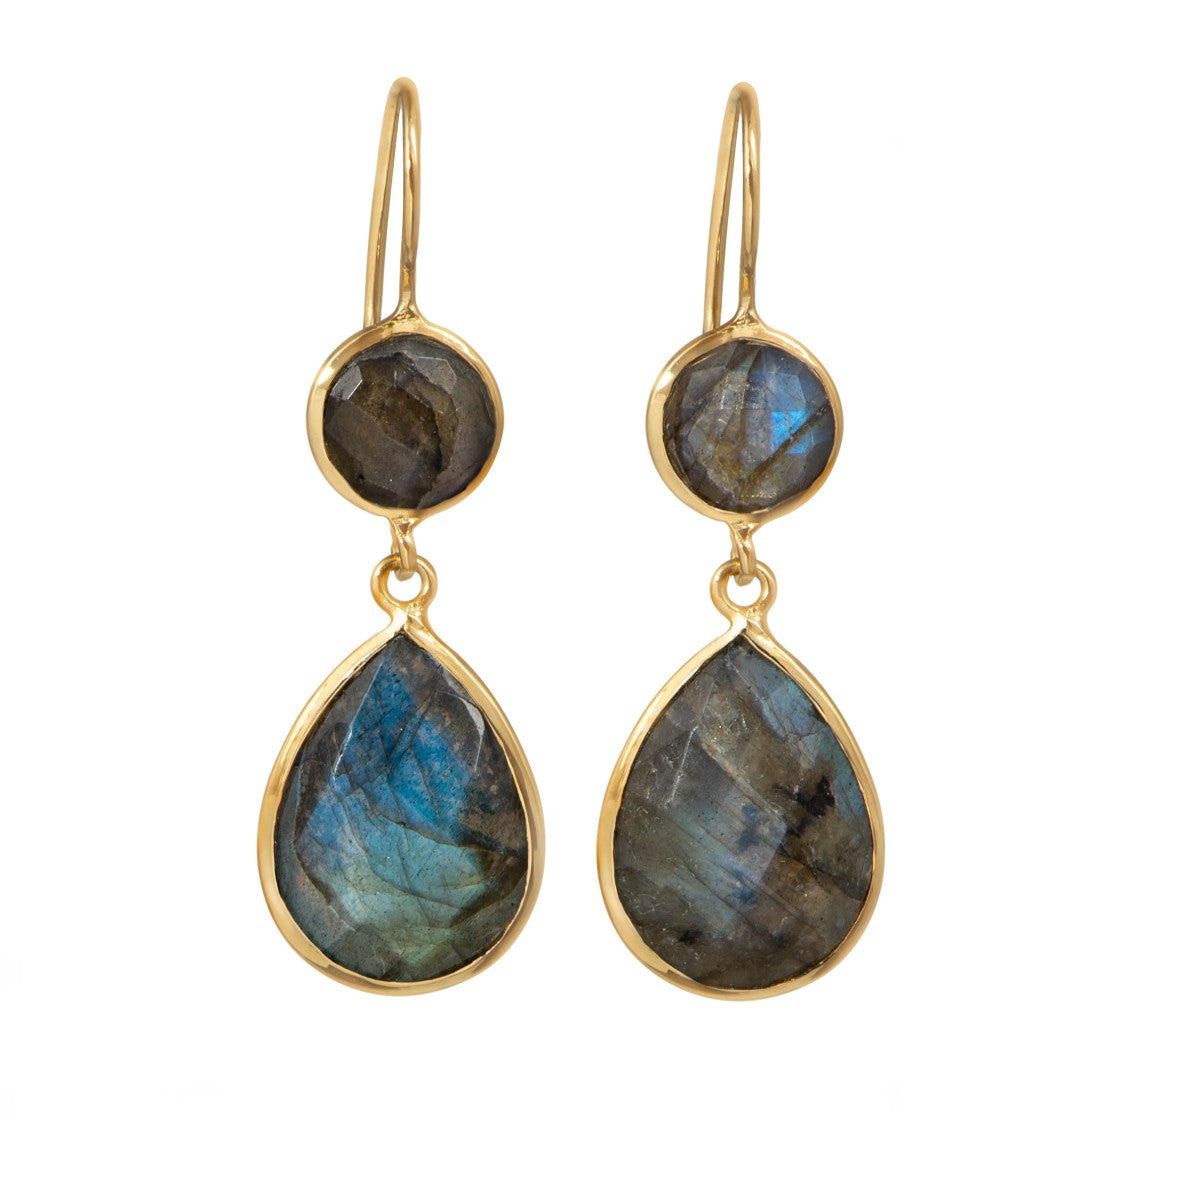 Labradorite Gemstone Two Stone Earrings in Gold Plated Sterling Silver - Teardrop